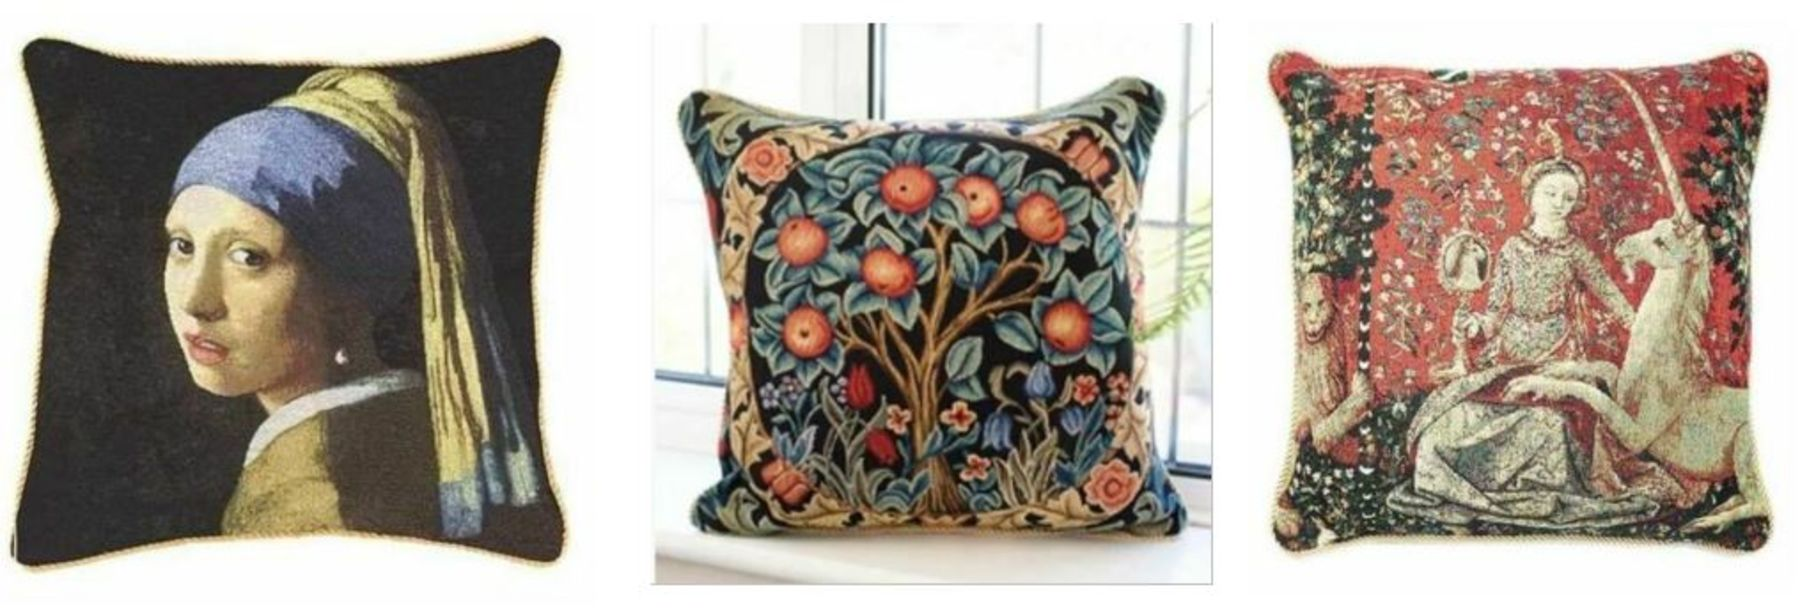 Signare Tapestry Cushions